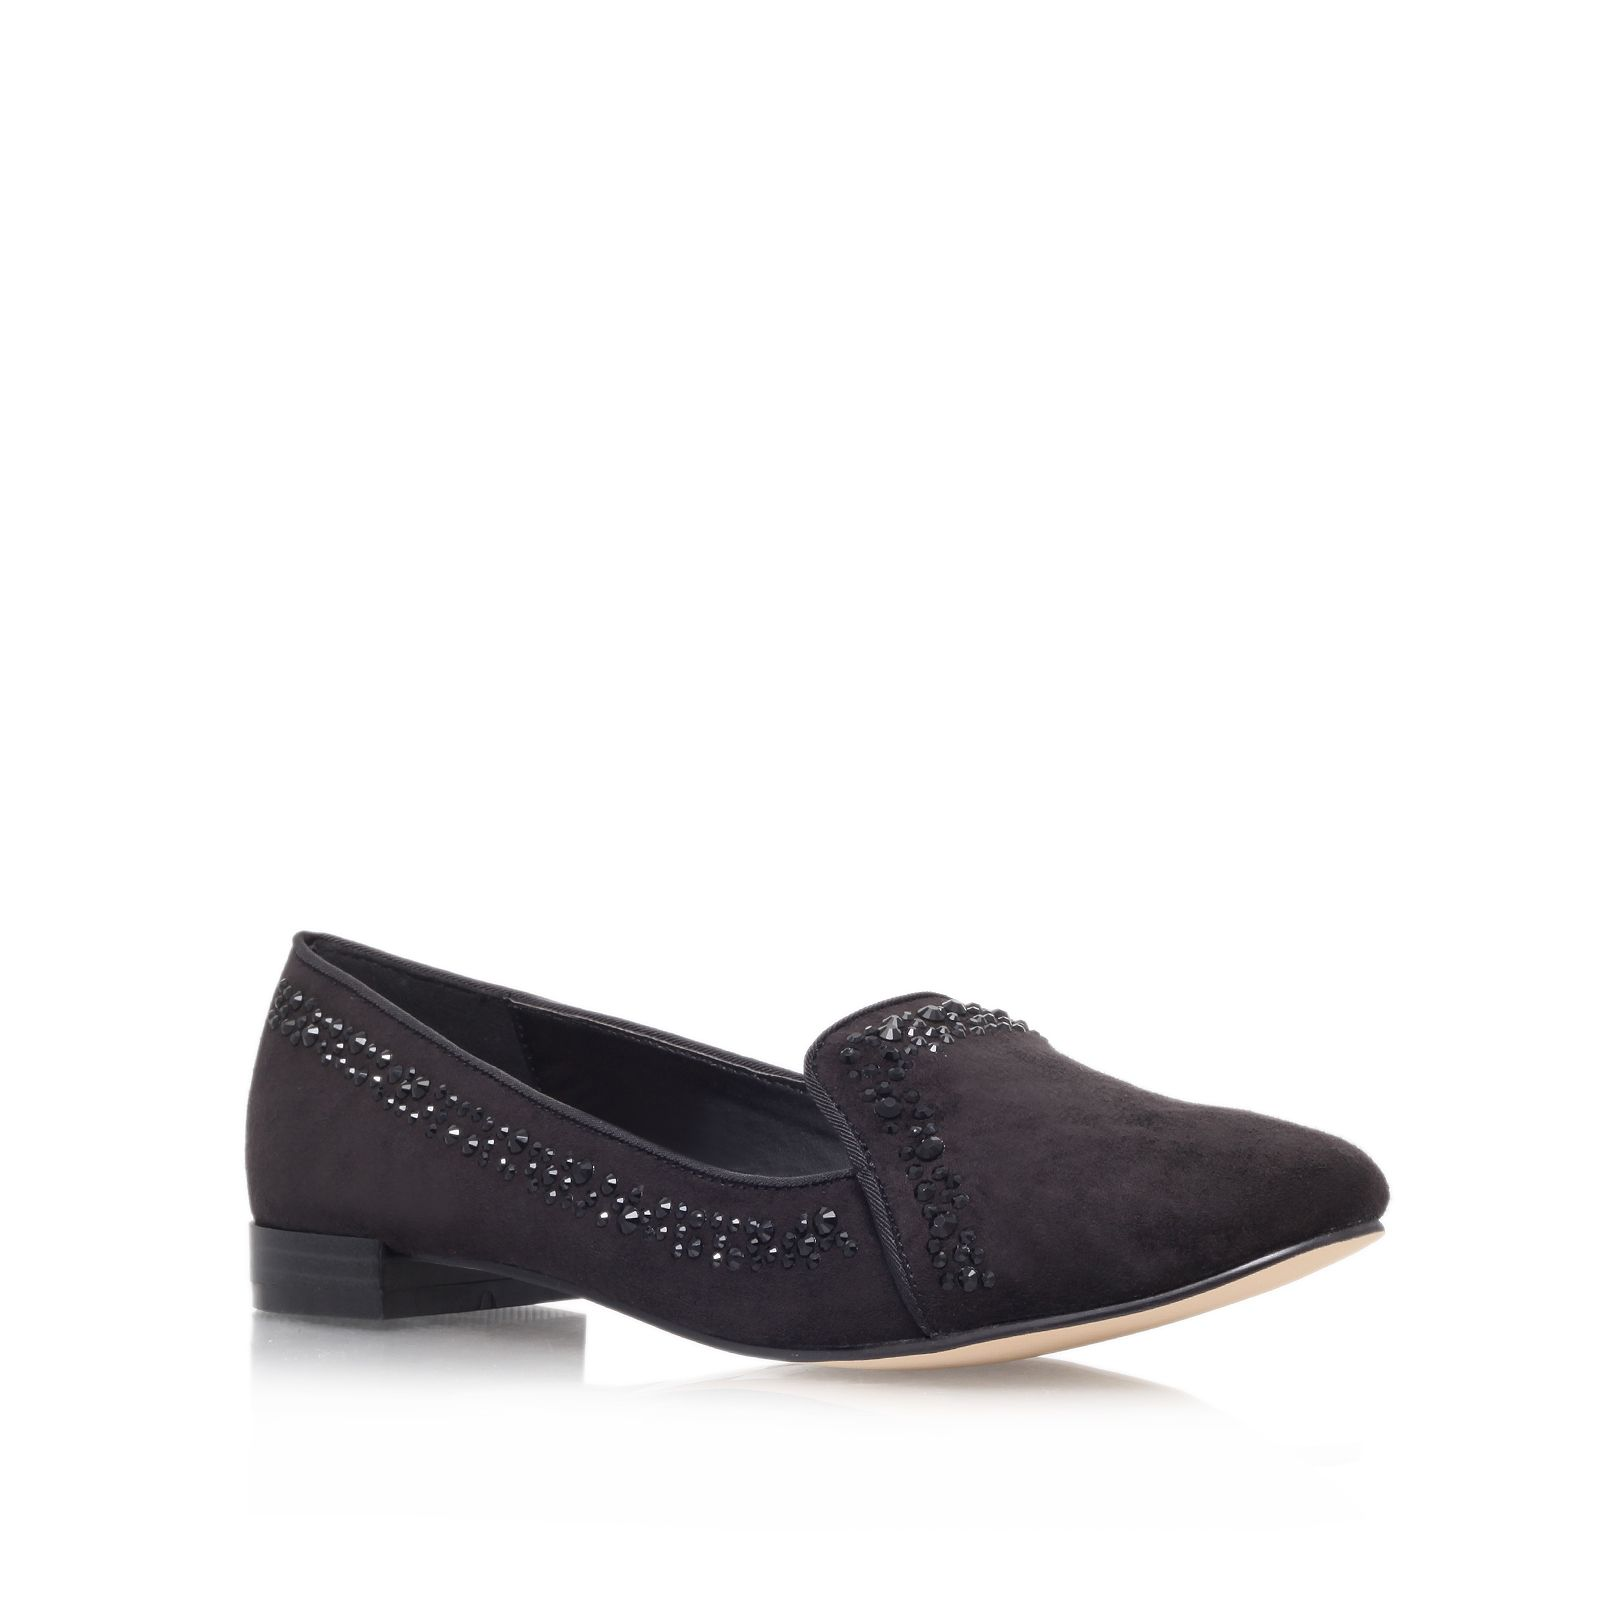 Nico flat slipper shoes